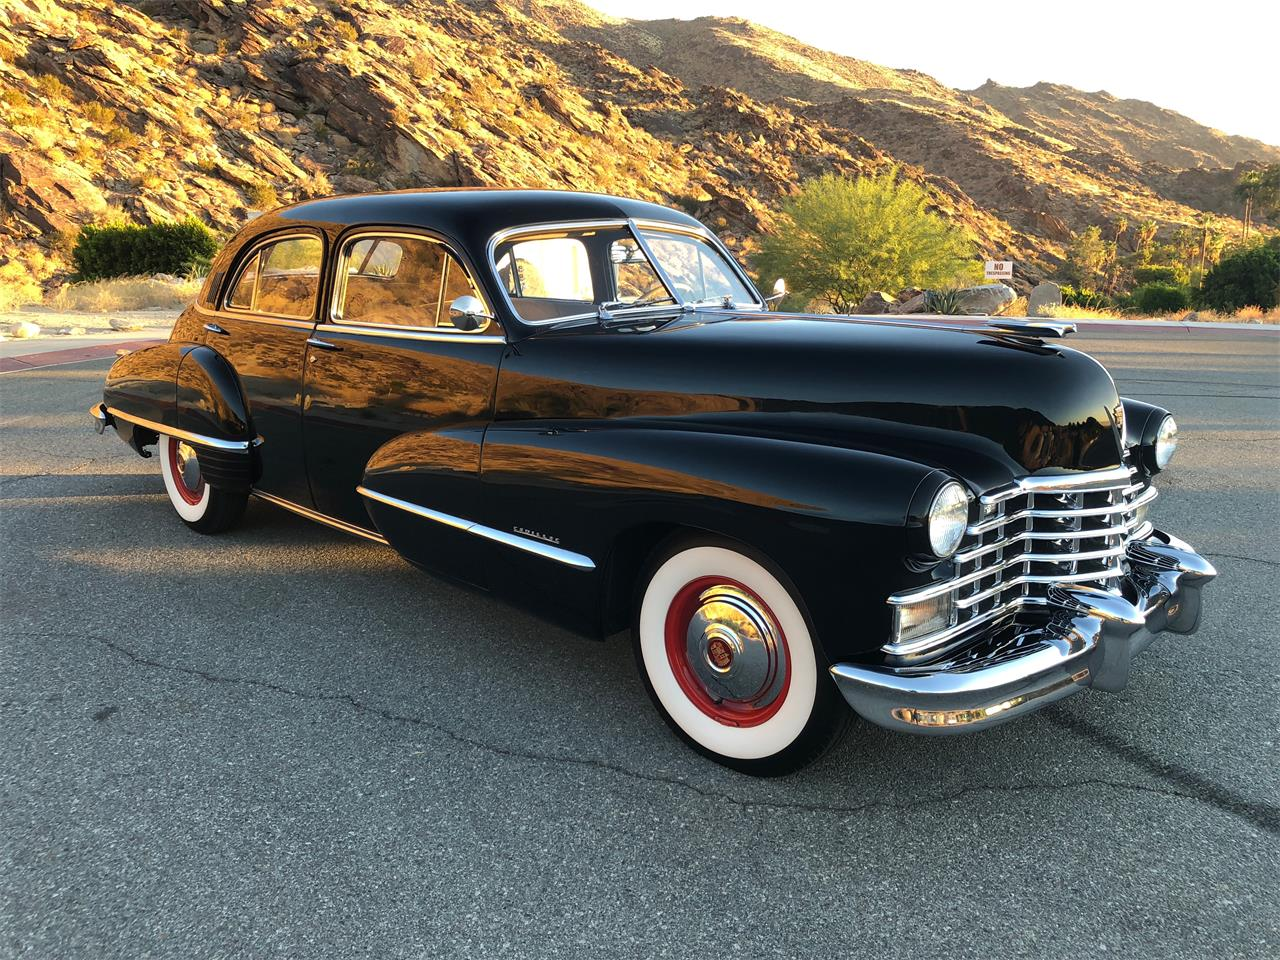 Large Picture of Classic 1946 Cadillac Fleetwood 60 Special Offered by a Private Seller - QMKK